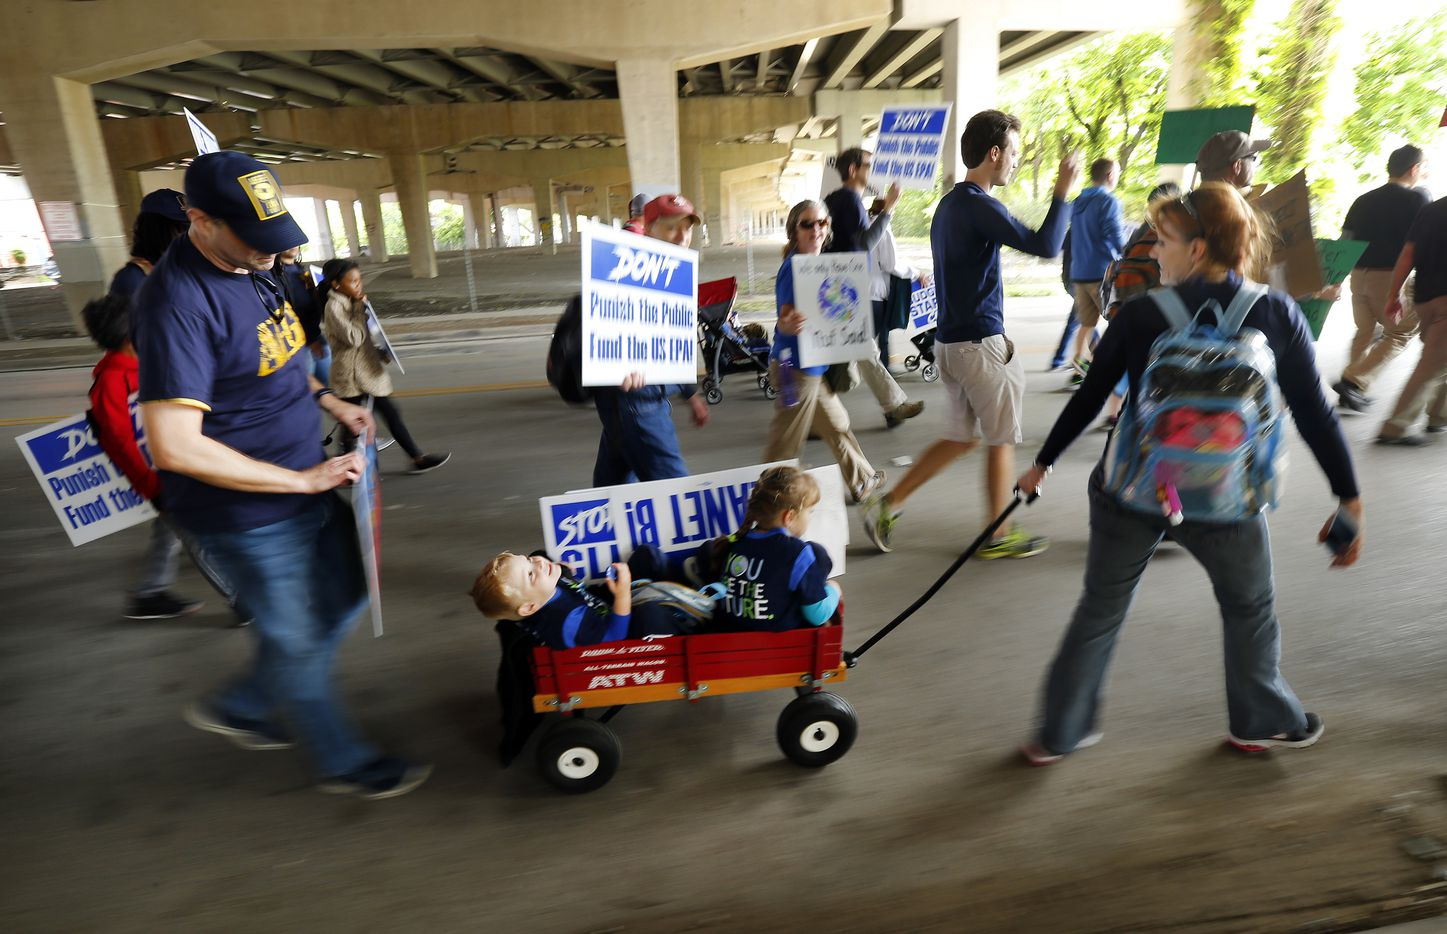 The Steib family of Sachse, Texas (from left) Clovis, Jake, Sara and Sona joined thousands of other March For Science supporters as they march under Interstate 30 on their way to Fair Park's Earth Day celebration, Saturday, April 22, 2017. (Tom Fox/The Dallas Morning News)